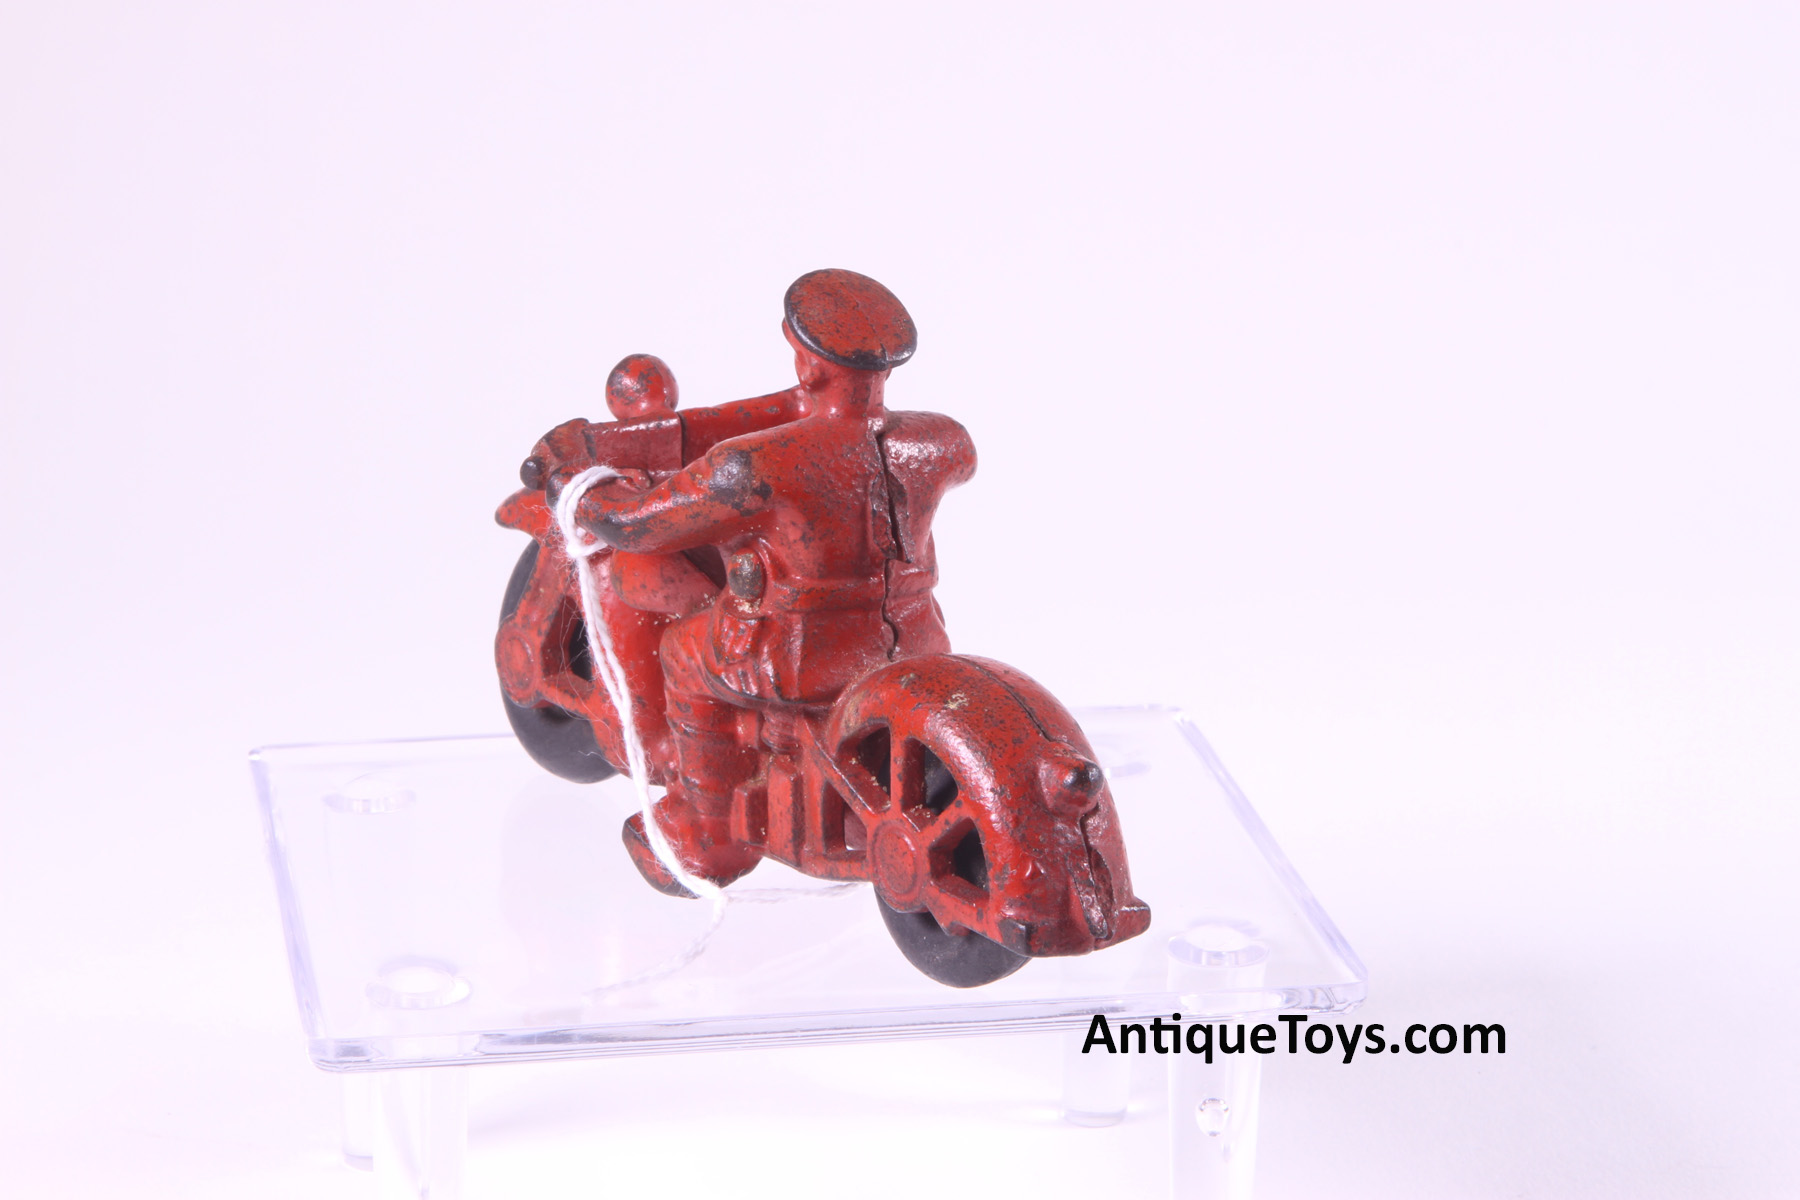 x-SOLD-Hubley Cast Iron Trooper Motorcycle - Antique Toys for Sale